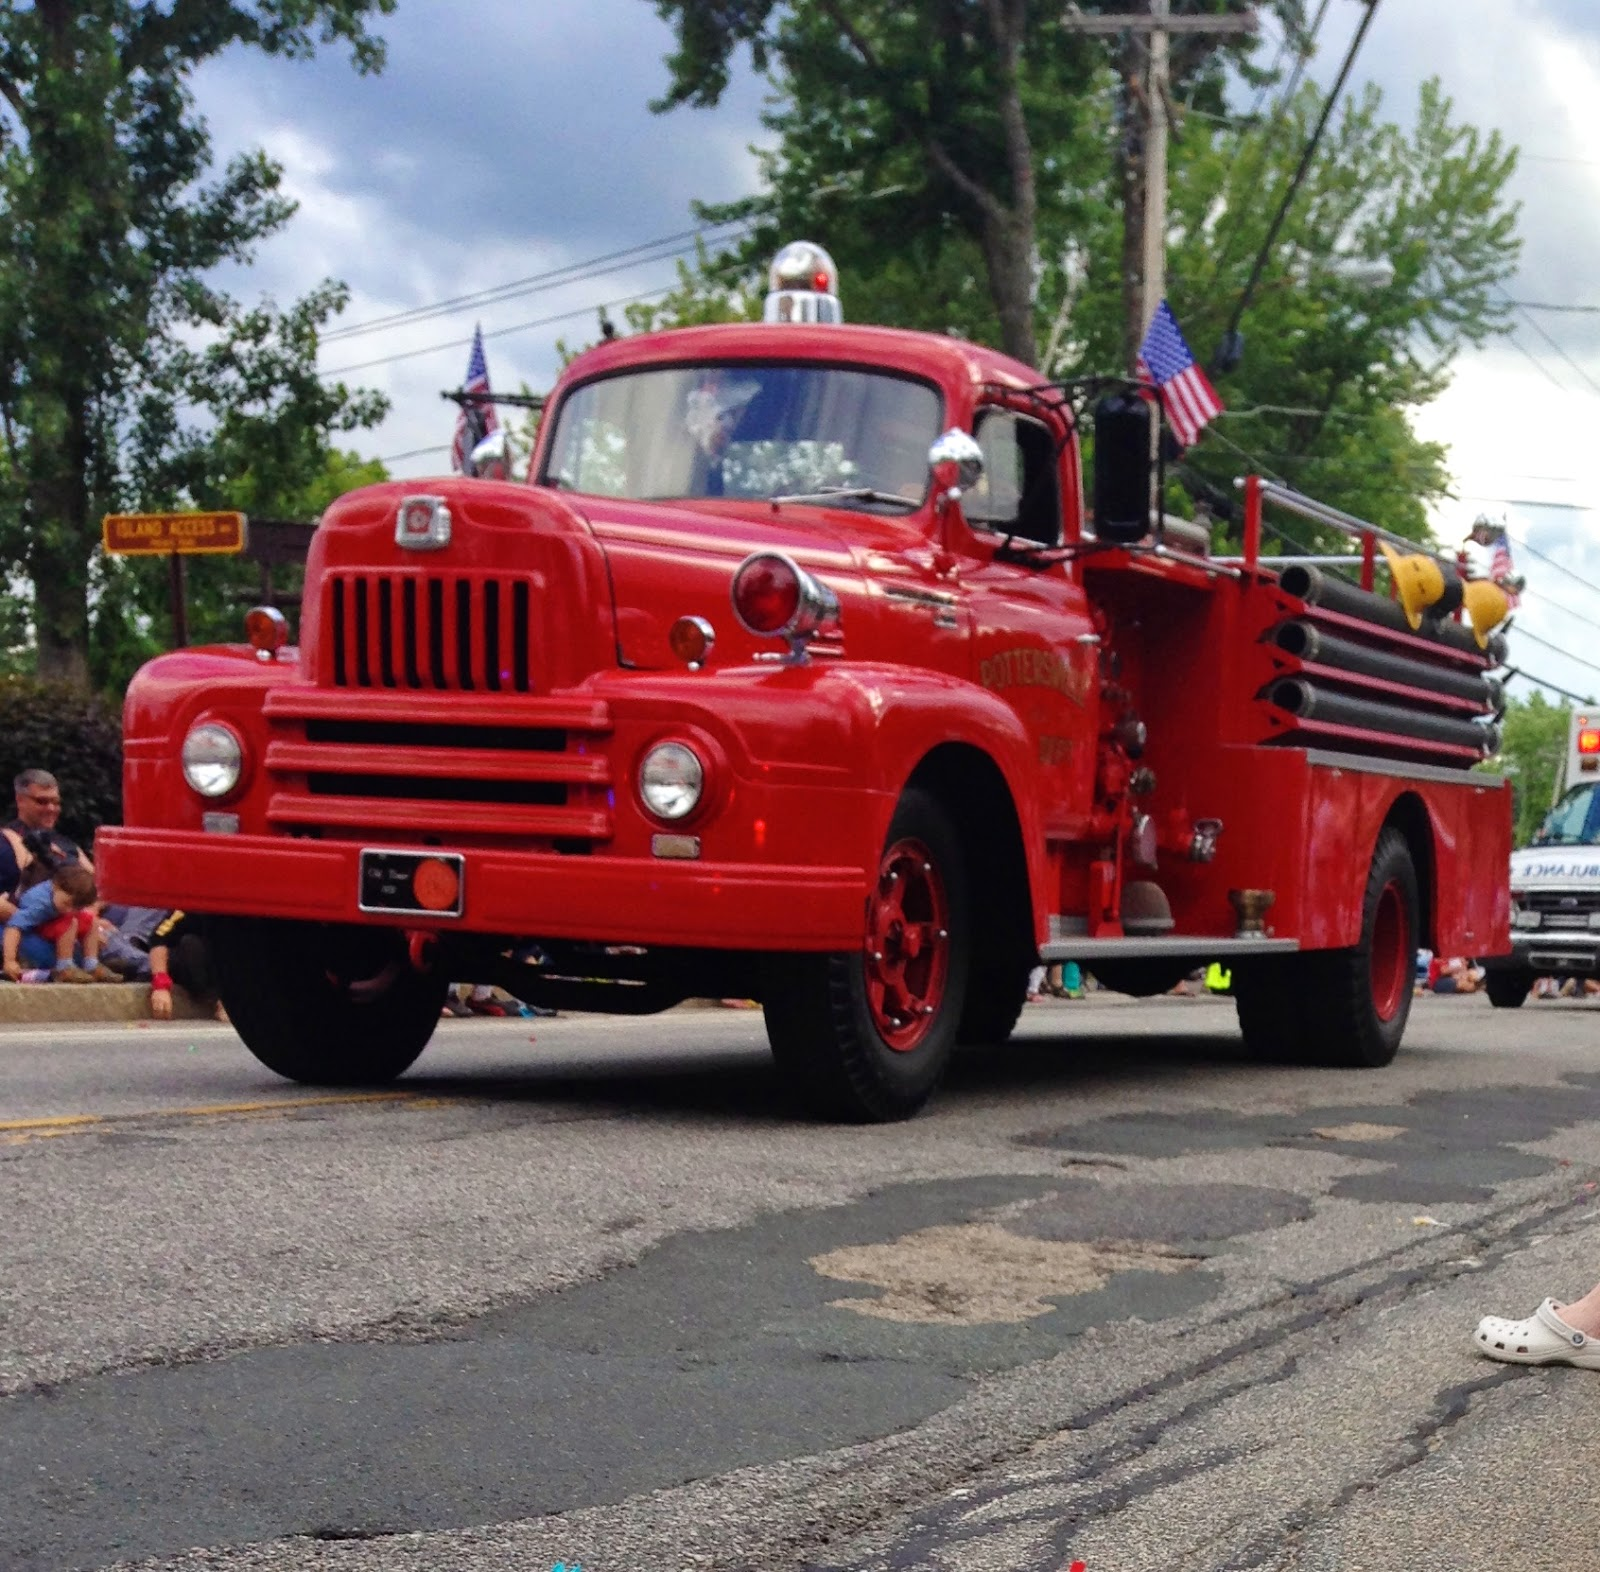 Old red fire truck in Schroon Lake 4th of July parade-www.goldenboyandme.com